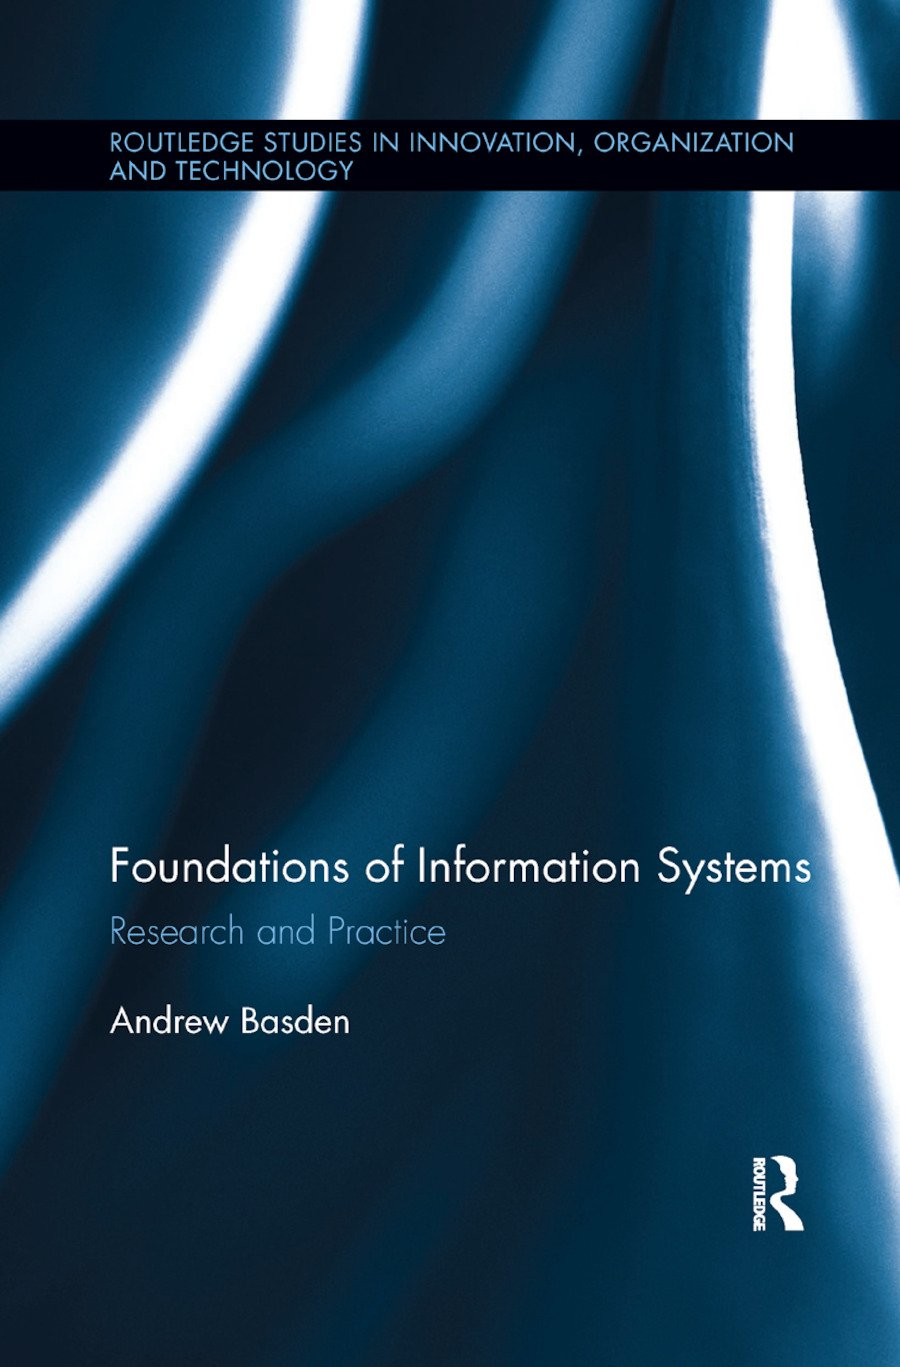 The Foundations of Information Systems: Research and Practice book cover